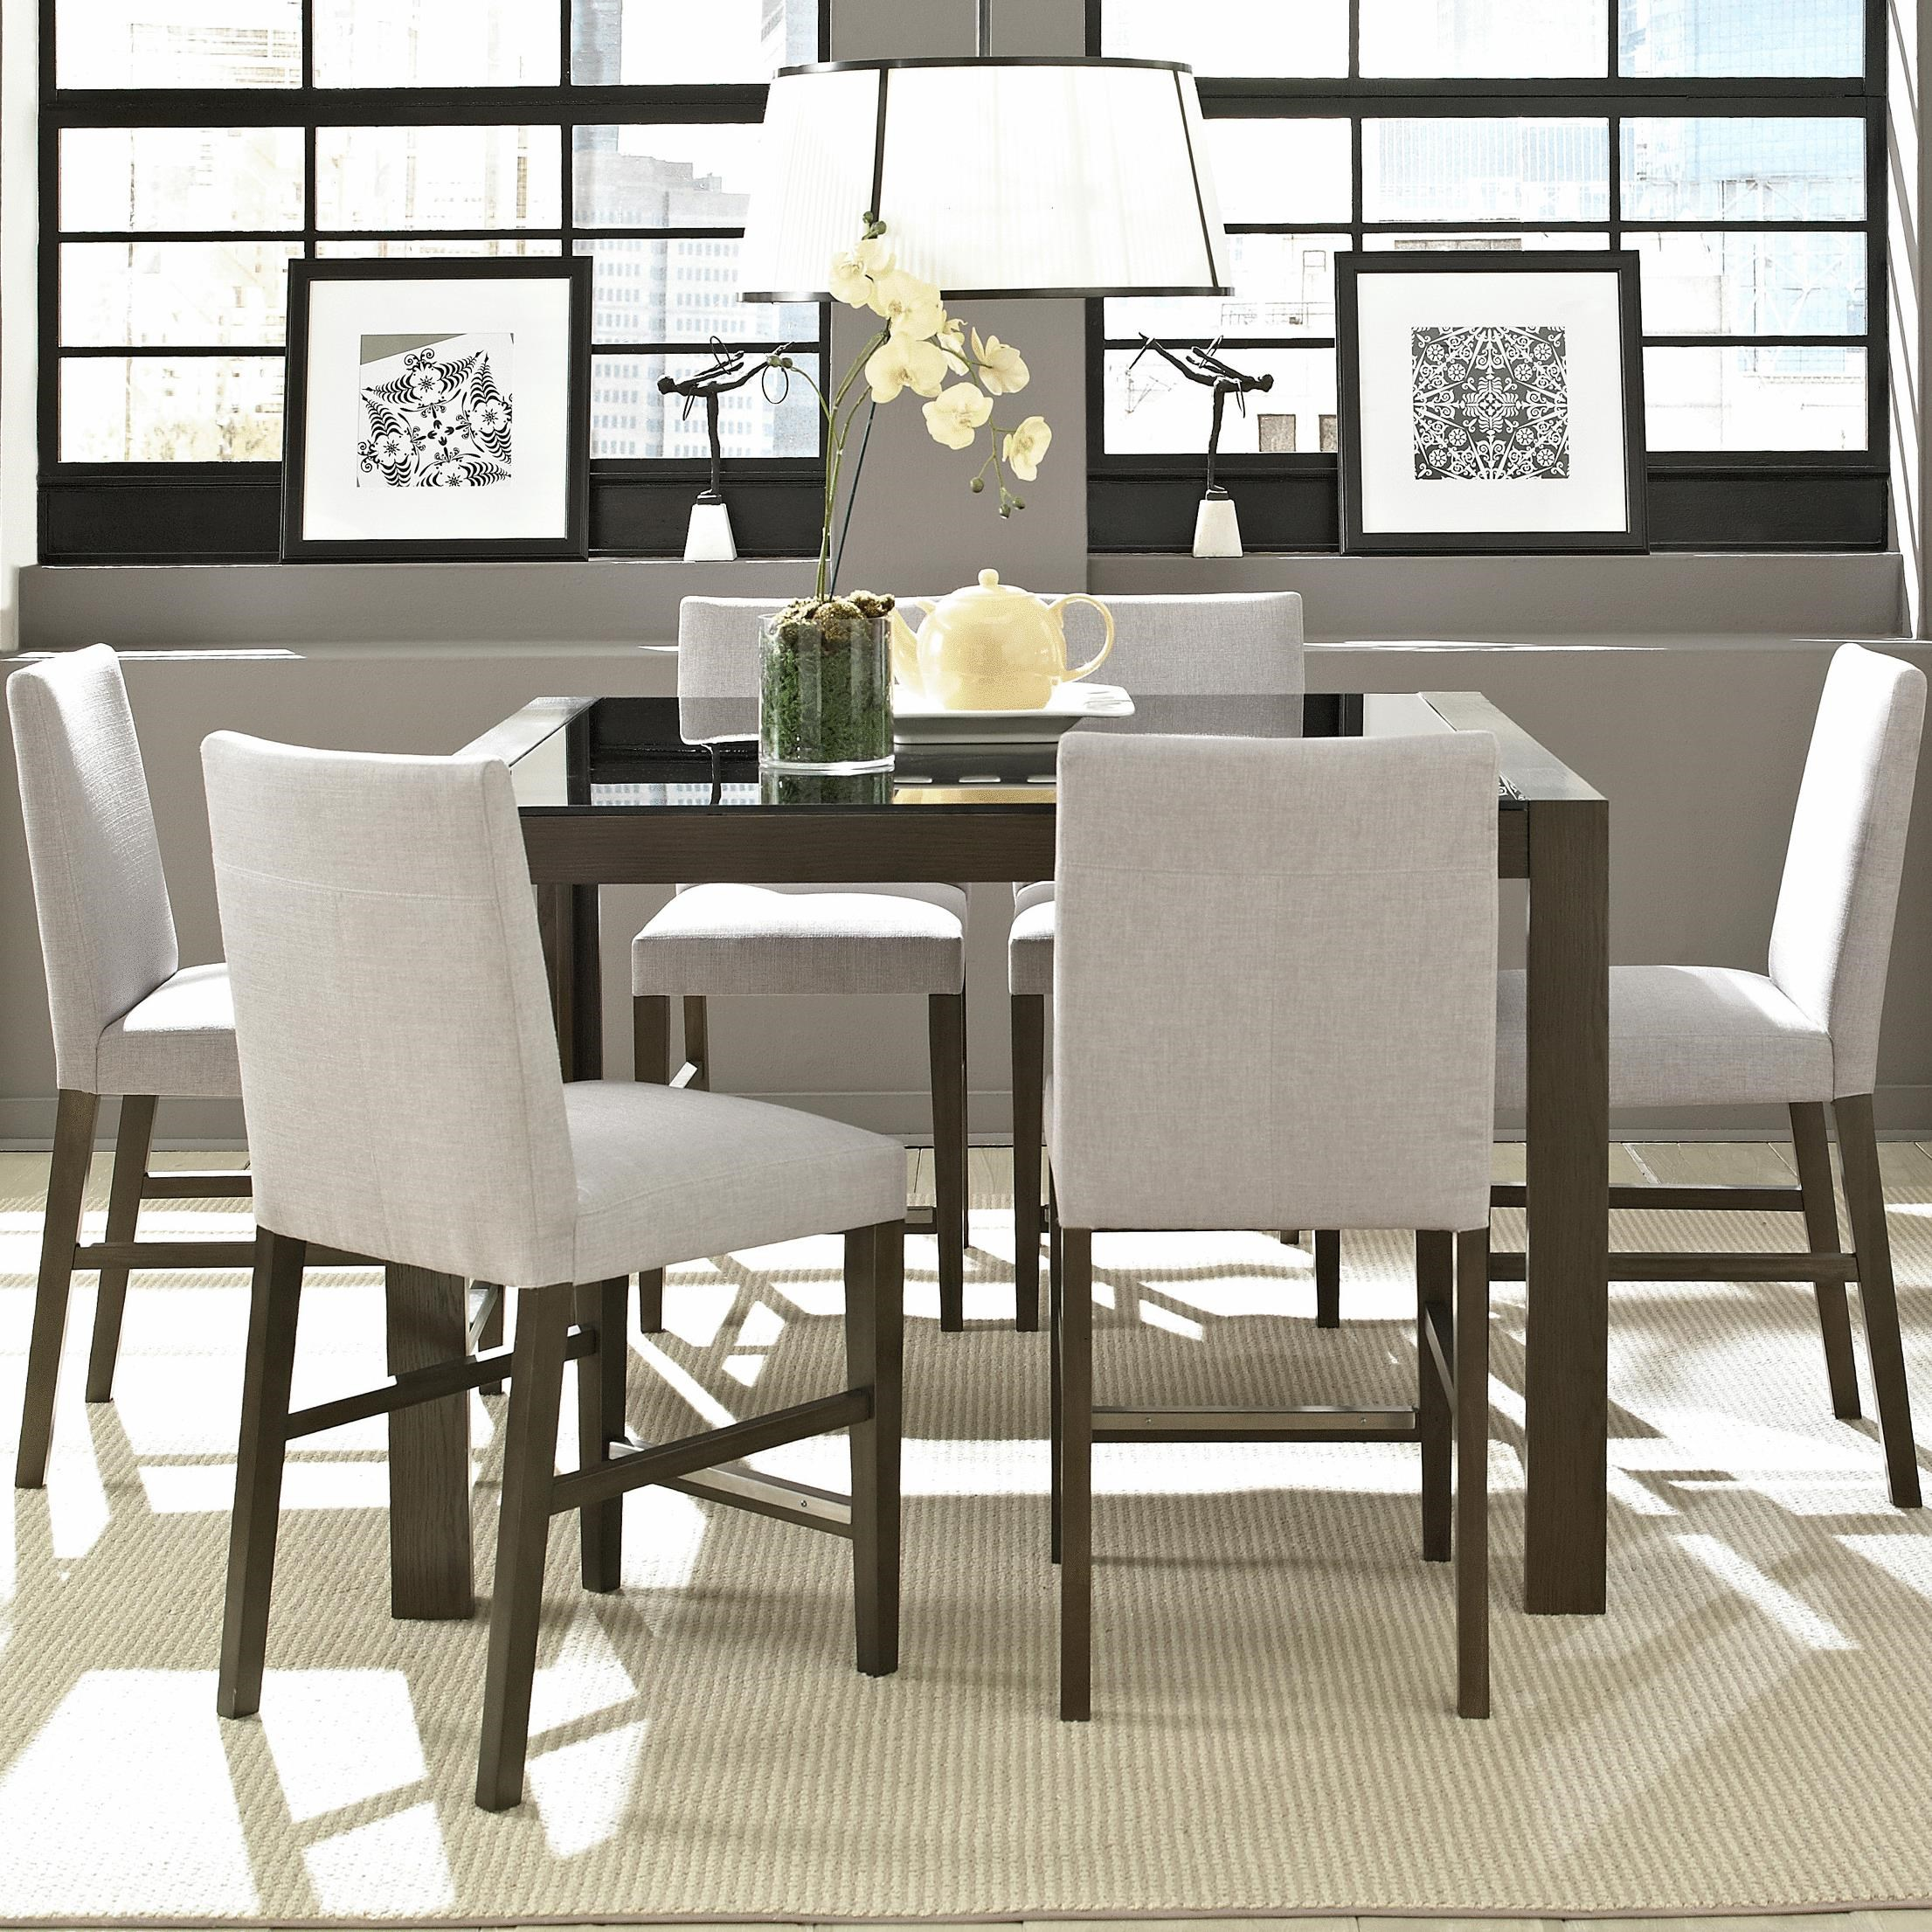 Montreal Cafe Table with Glass Top and 6 Chair Set by Casana  sc 1 st  Dream Home Furniture & Casana Montreal Cafe Table with Glass Top and 6 Chair Set | Dream ...